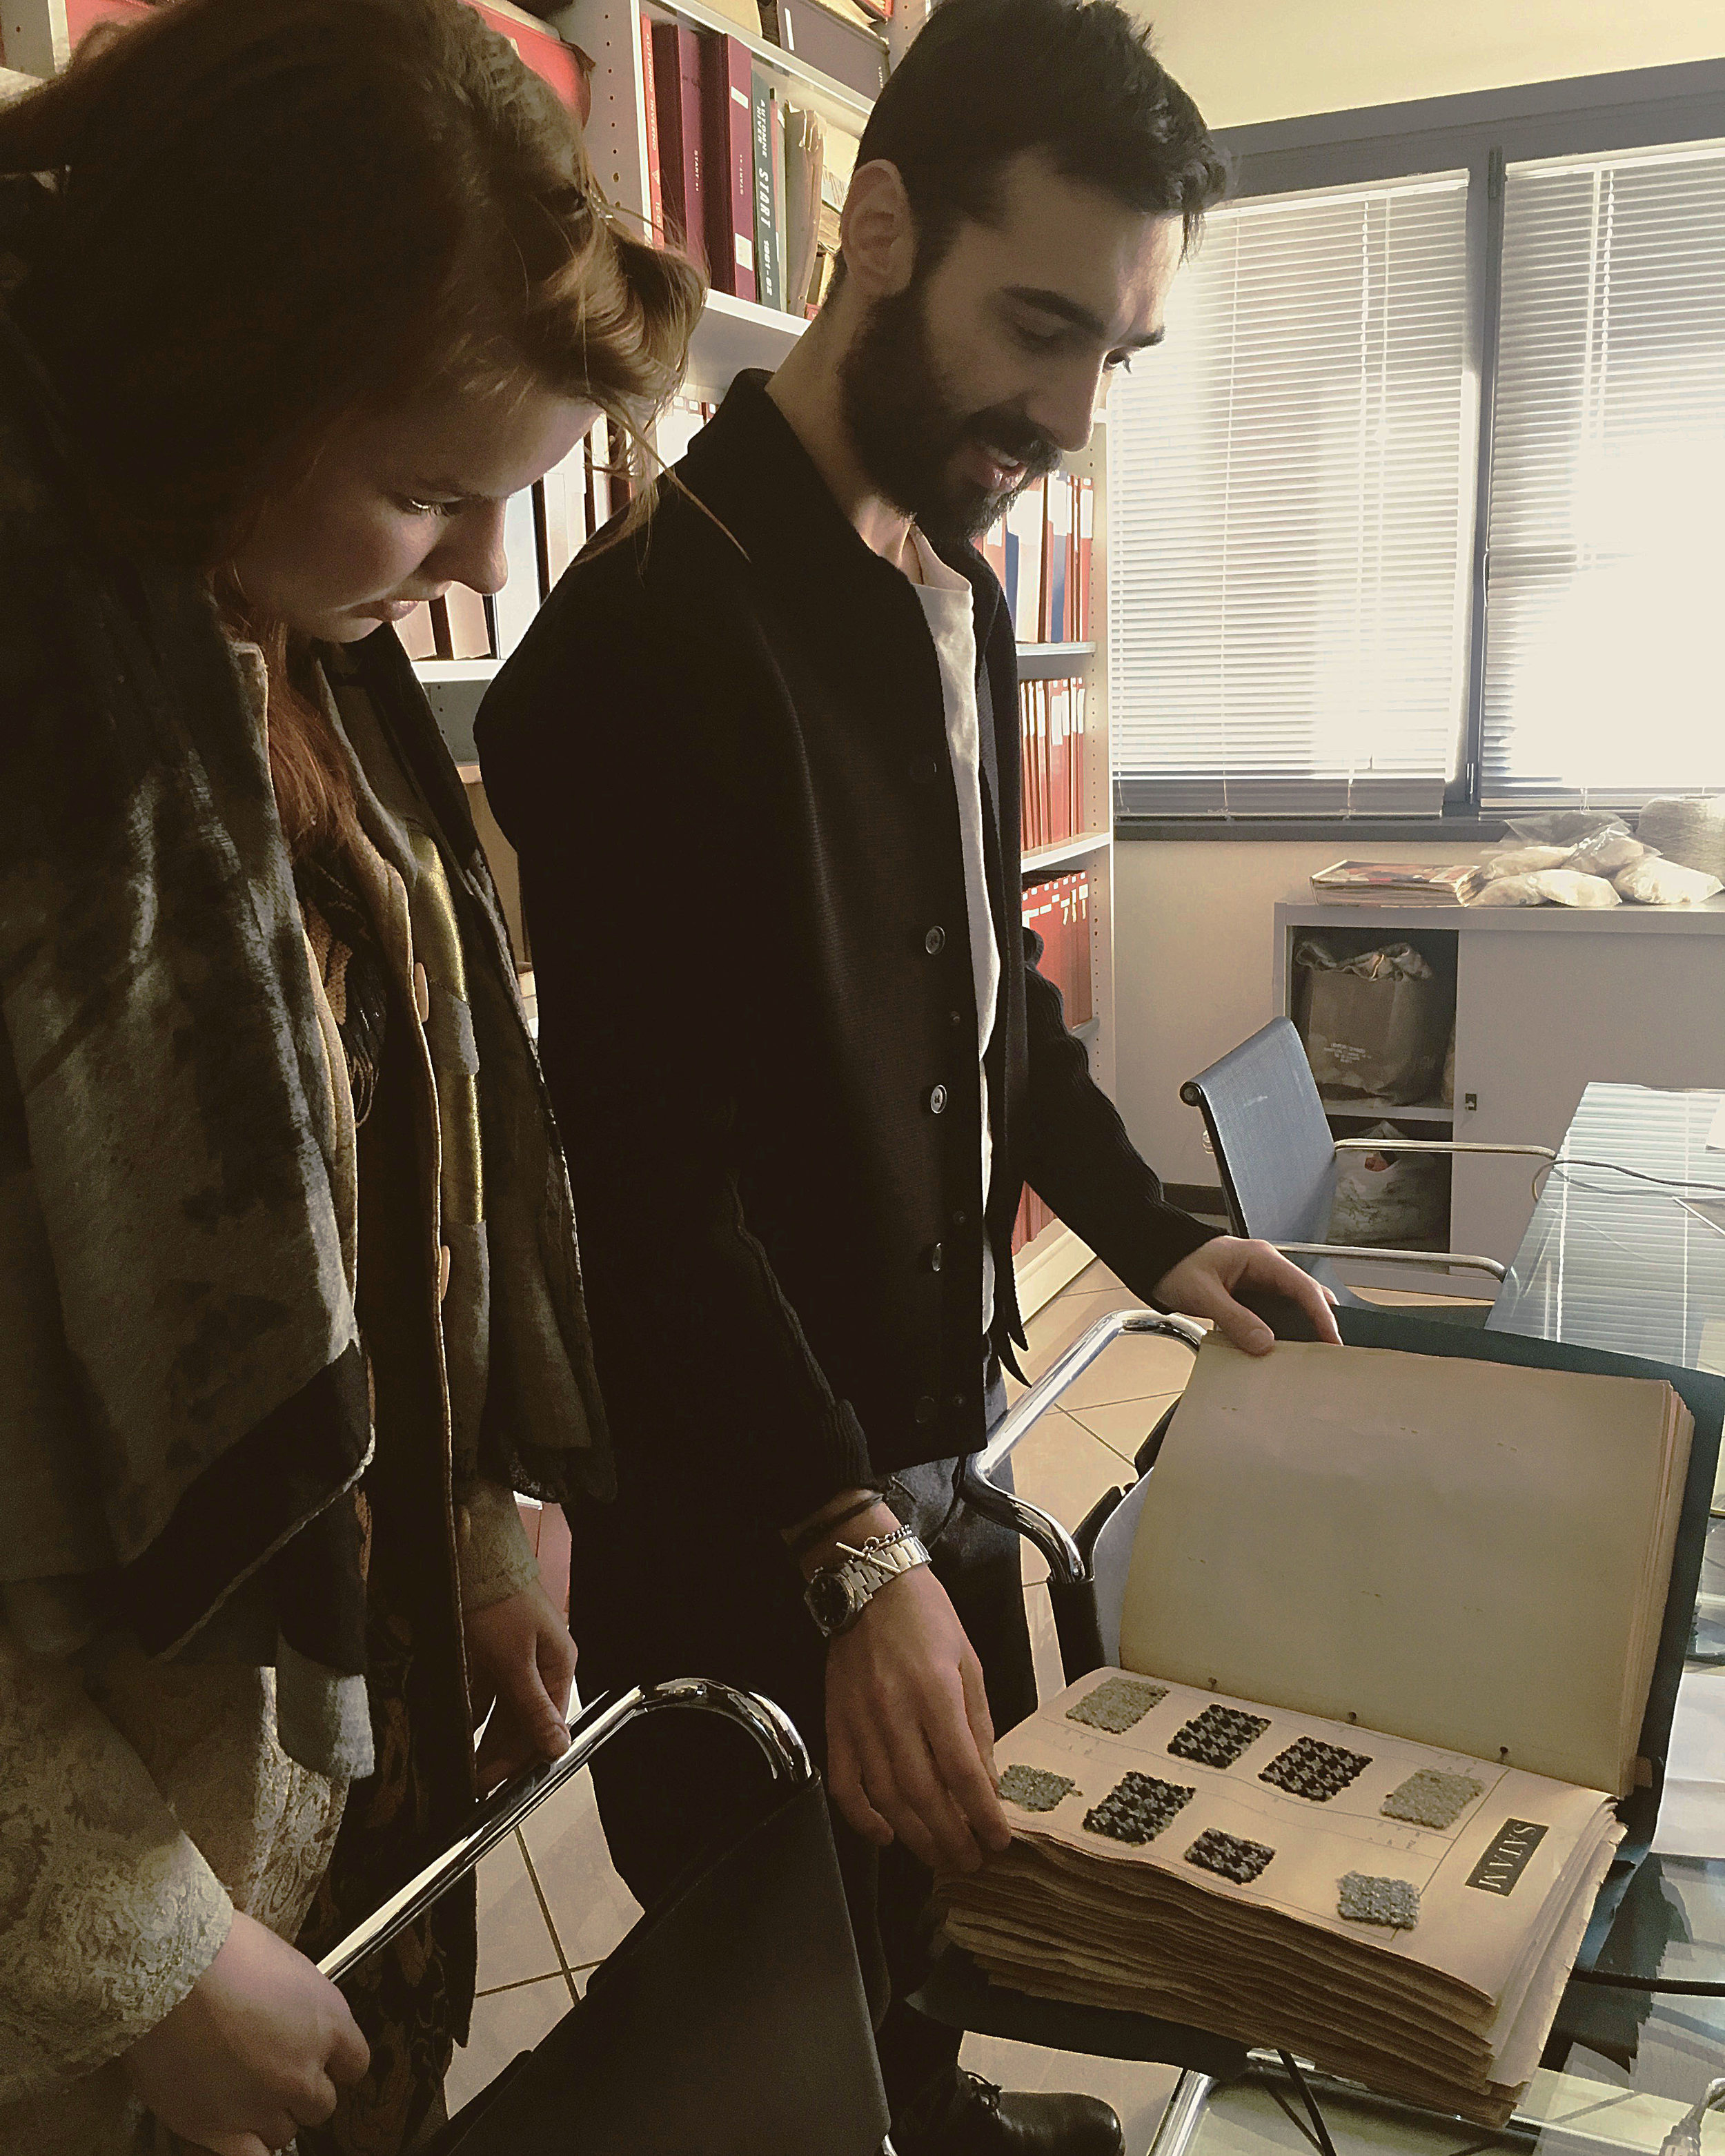 Liselore and Guido from Lanificio Bisentino looking at archive materials